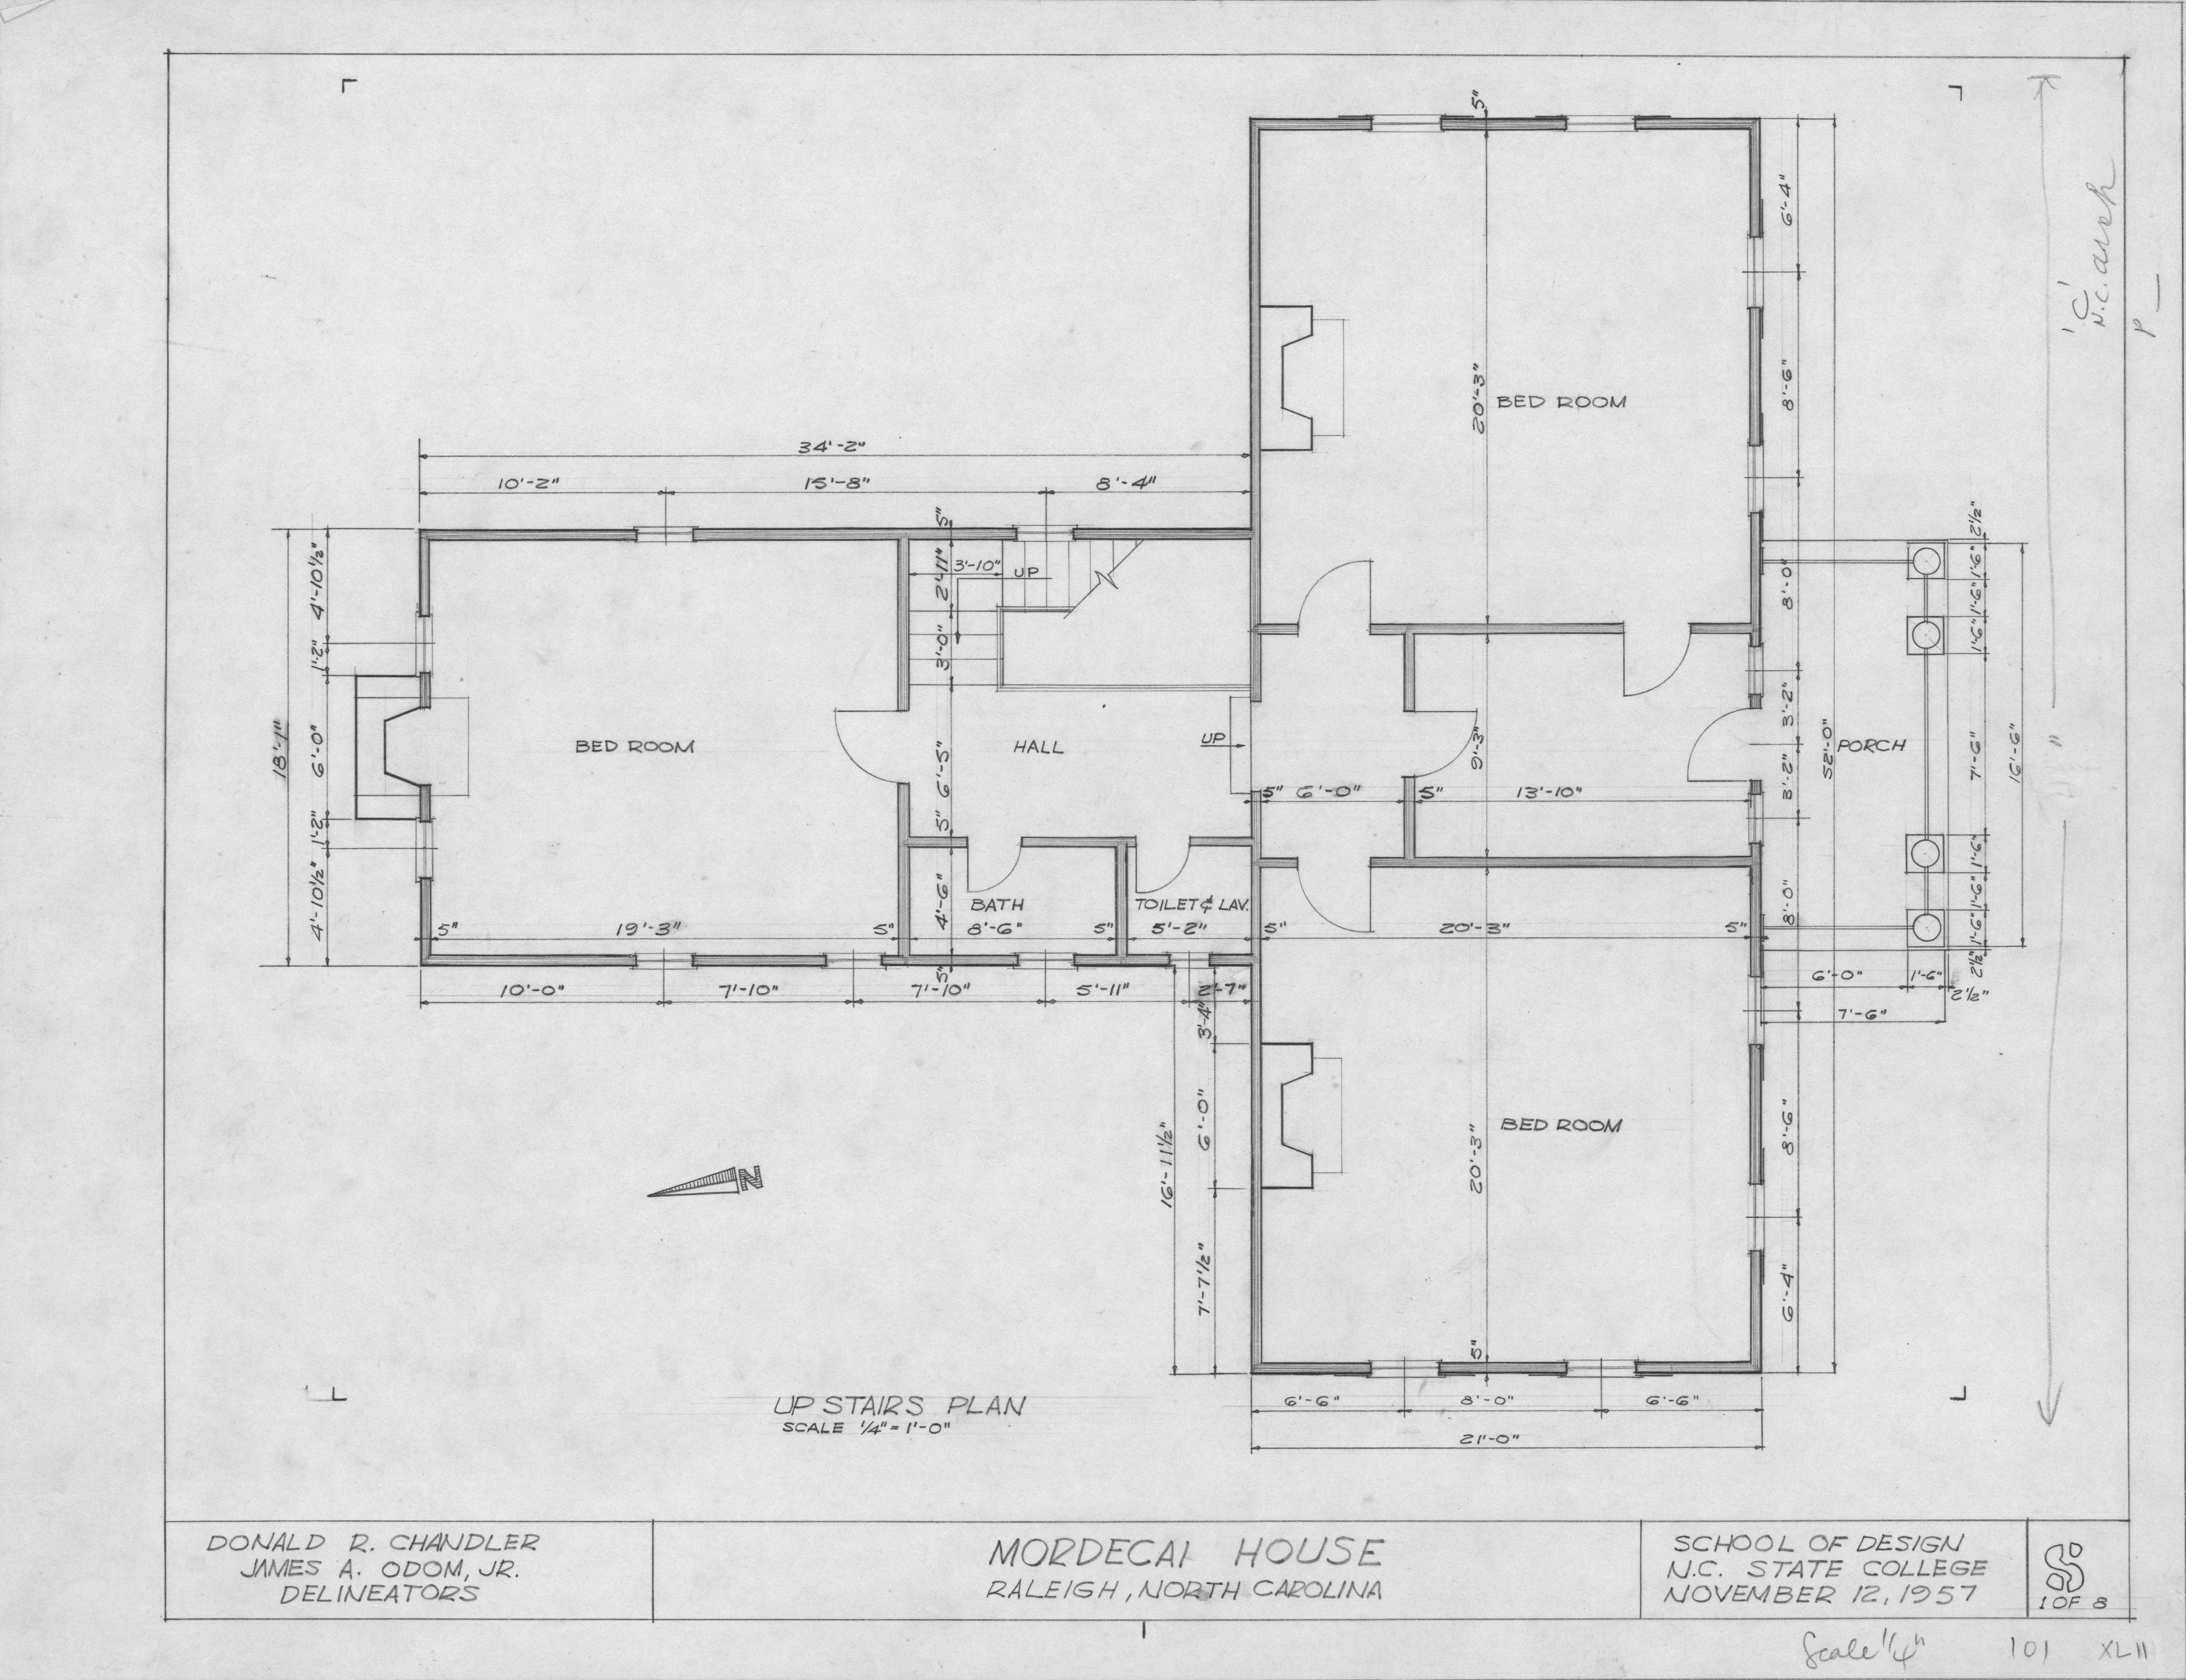 Second Floor Plan Mordecai House Raleigh North Carolina